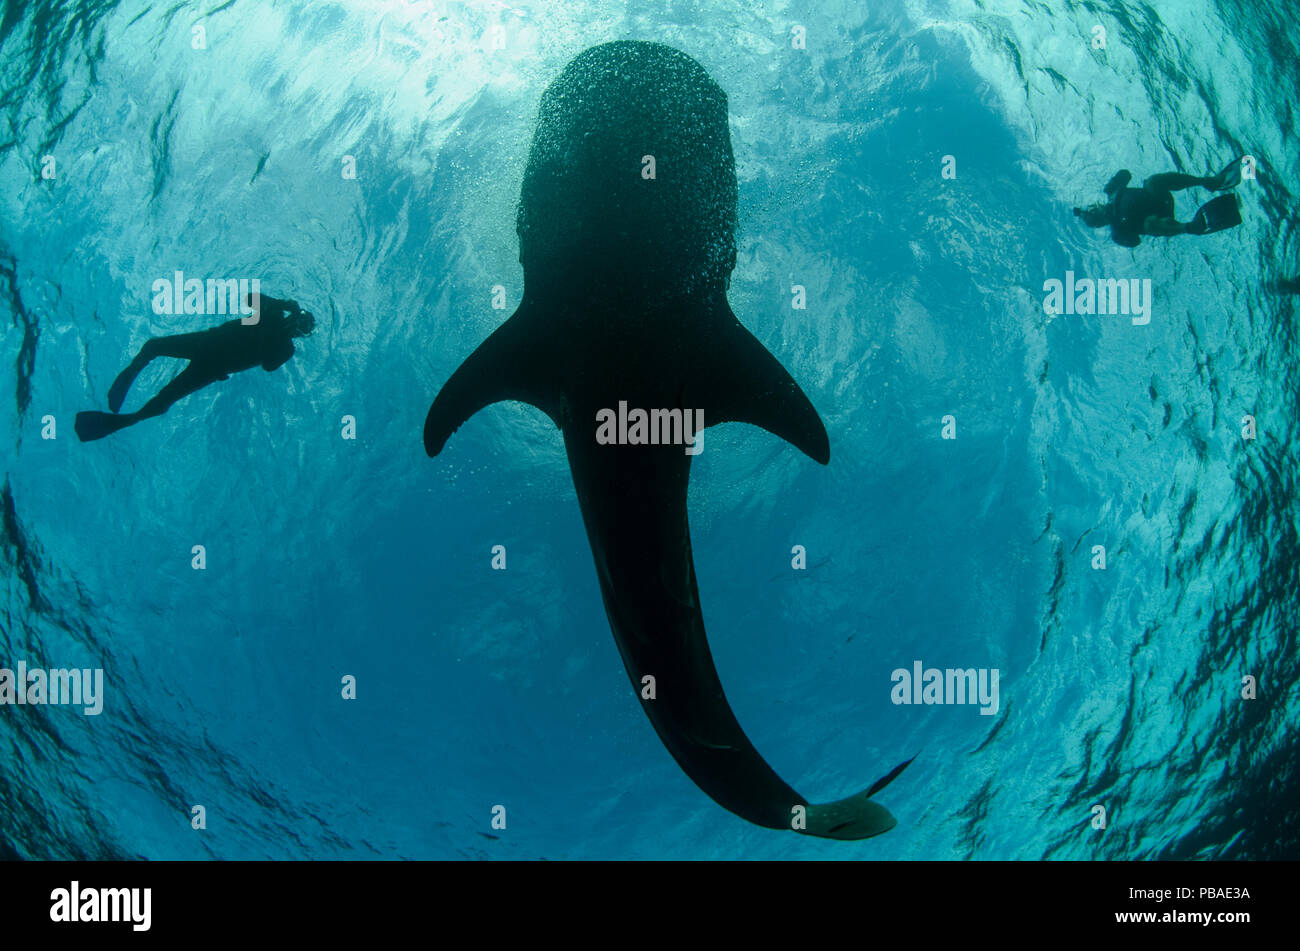 Whale shark (Rhincodon typus) and scuba divers seen from below, Cenderawasih Bay, West Papua. Indonesia. Stock Photo